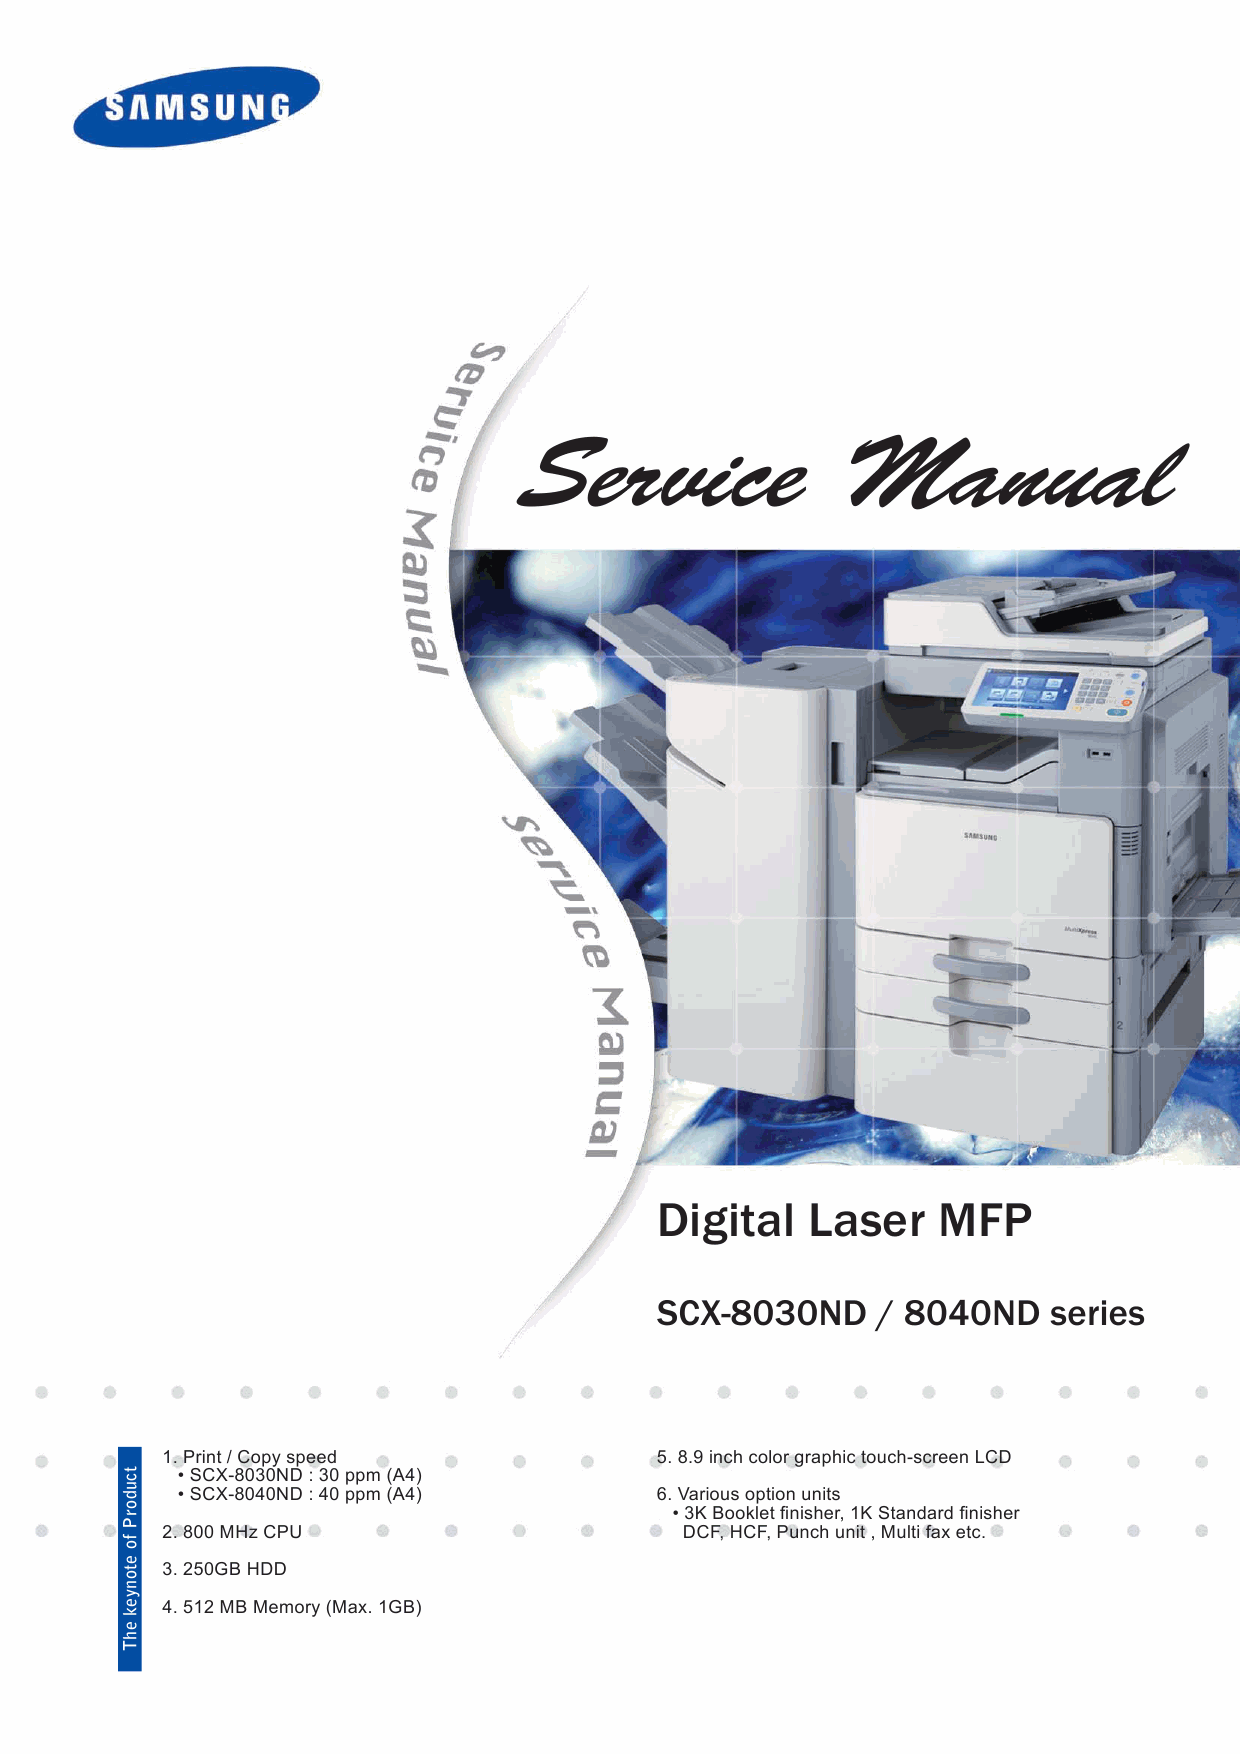 Samsung Digital-Laser-MFP SCX-8030ND 8040ND Parts and Service Manual-1